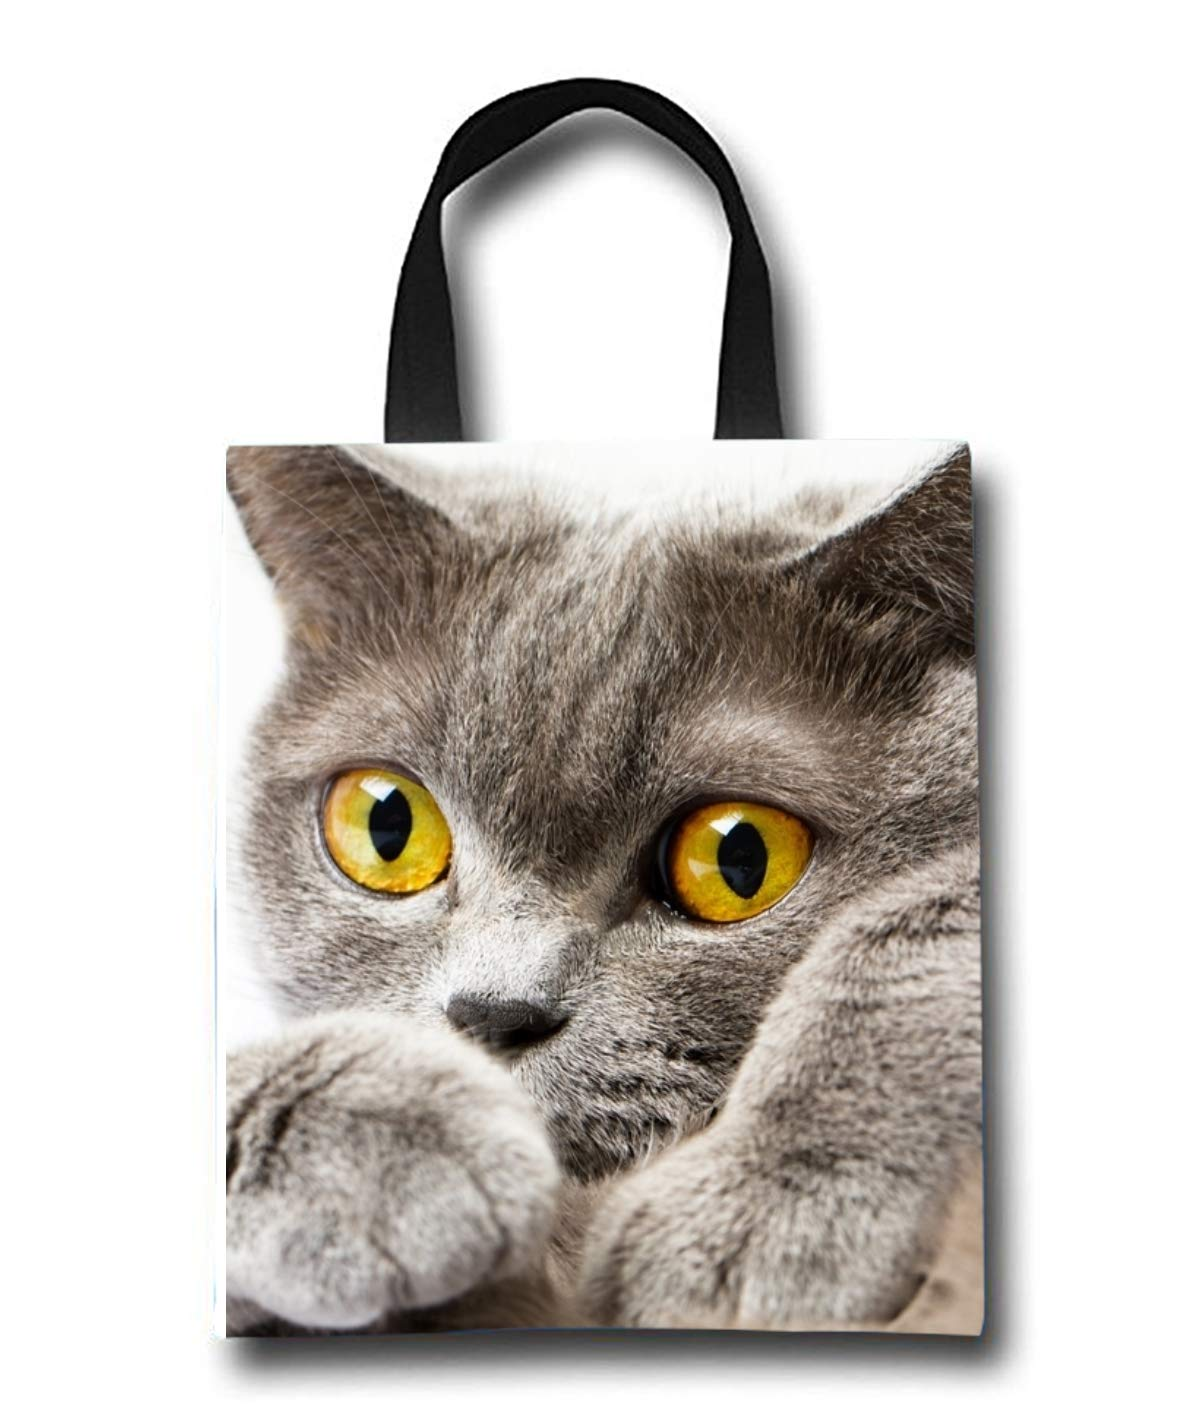 Cute Gray Cat Beach Tote Bag - Toy Tote Bag - Large Lightweight Market, Grocery & Picnic